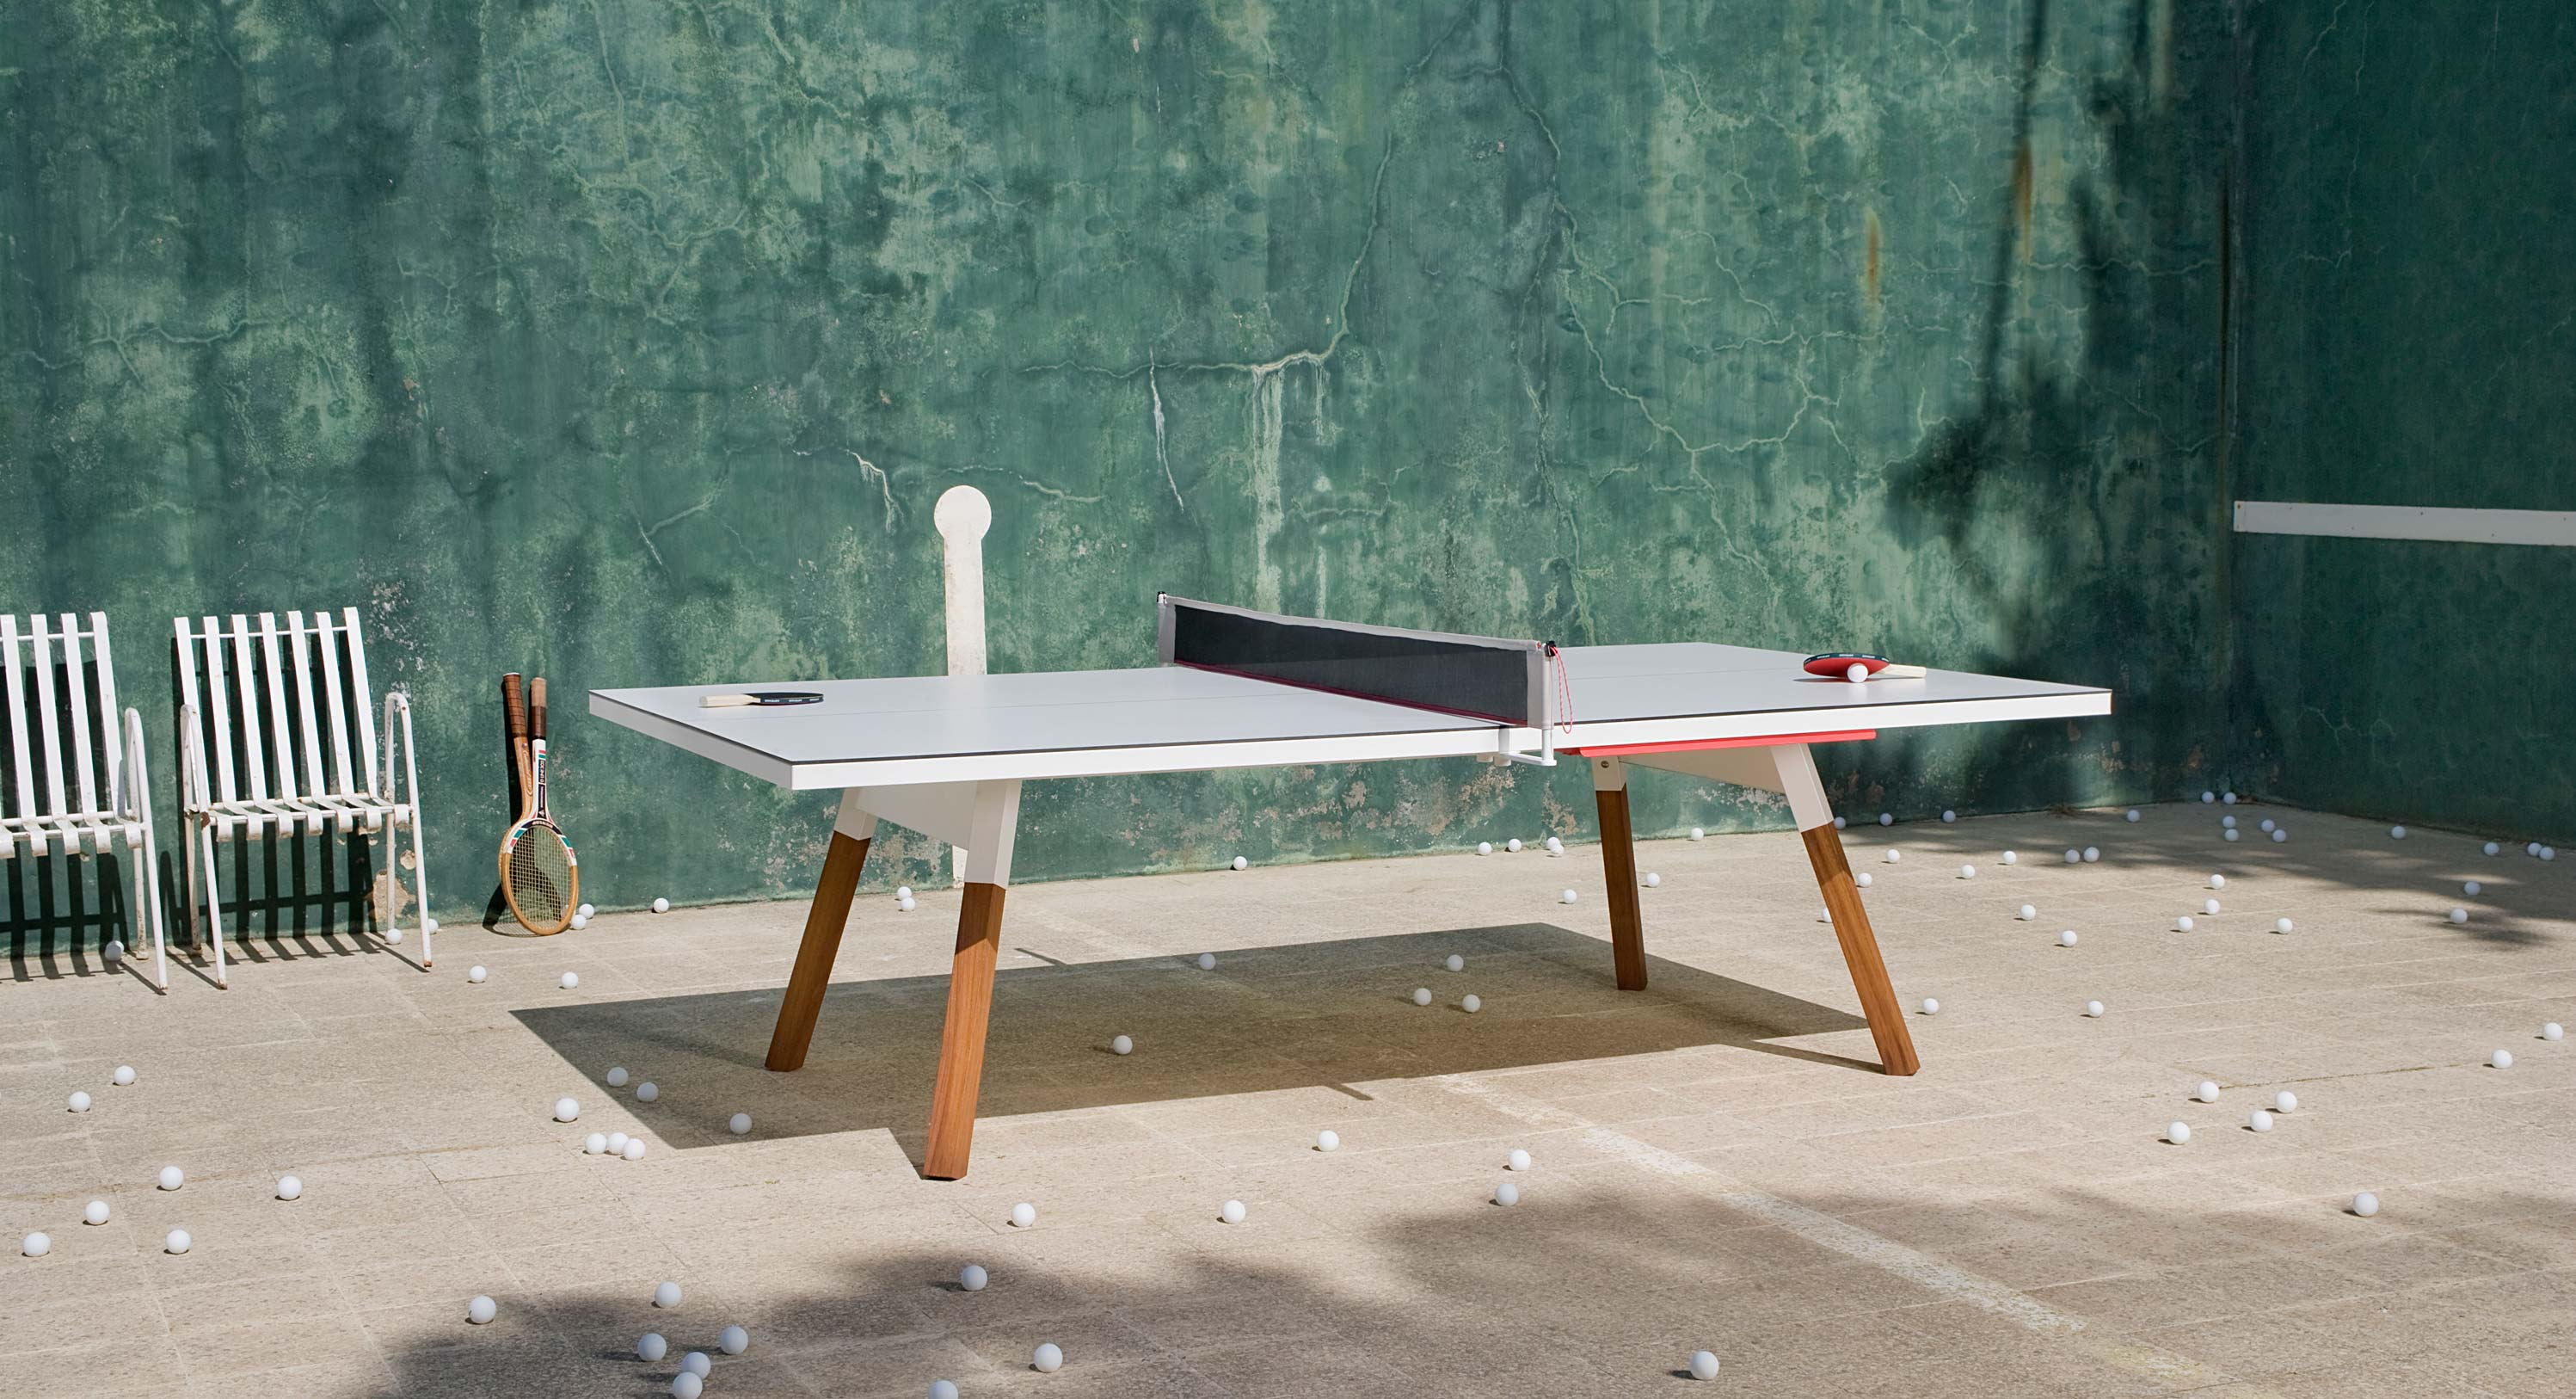 RS Barcelona: The Most Impressive Ping Pong Tables In The World